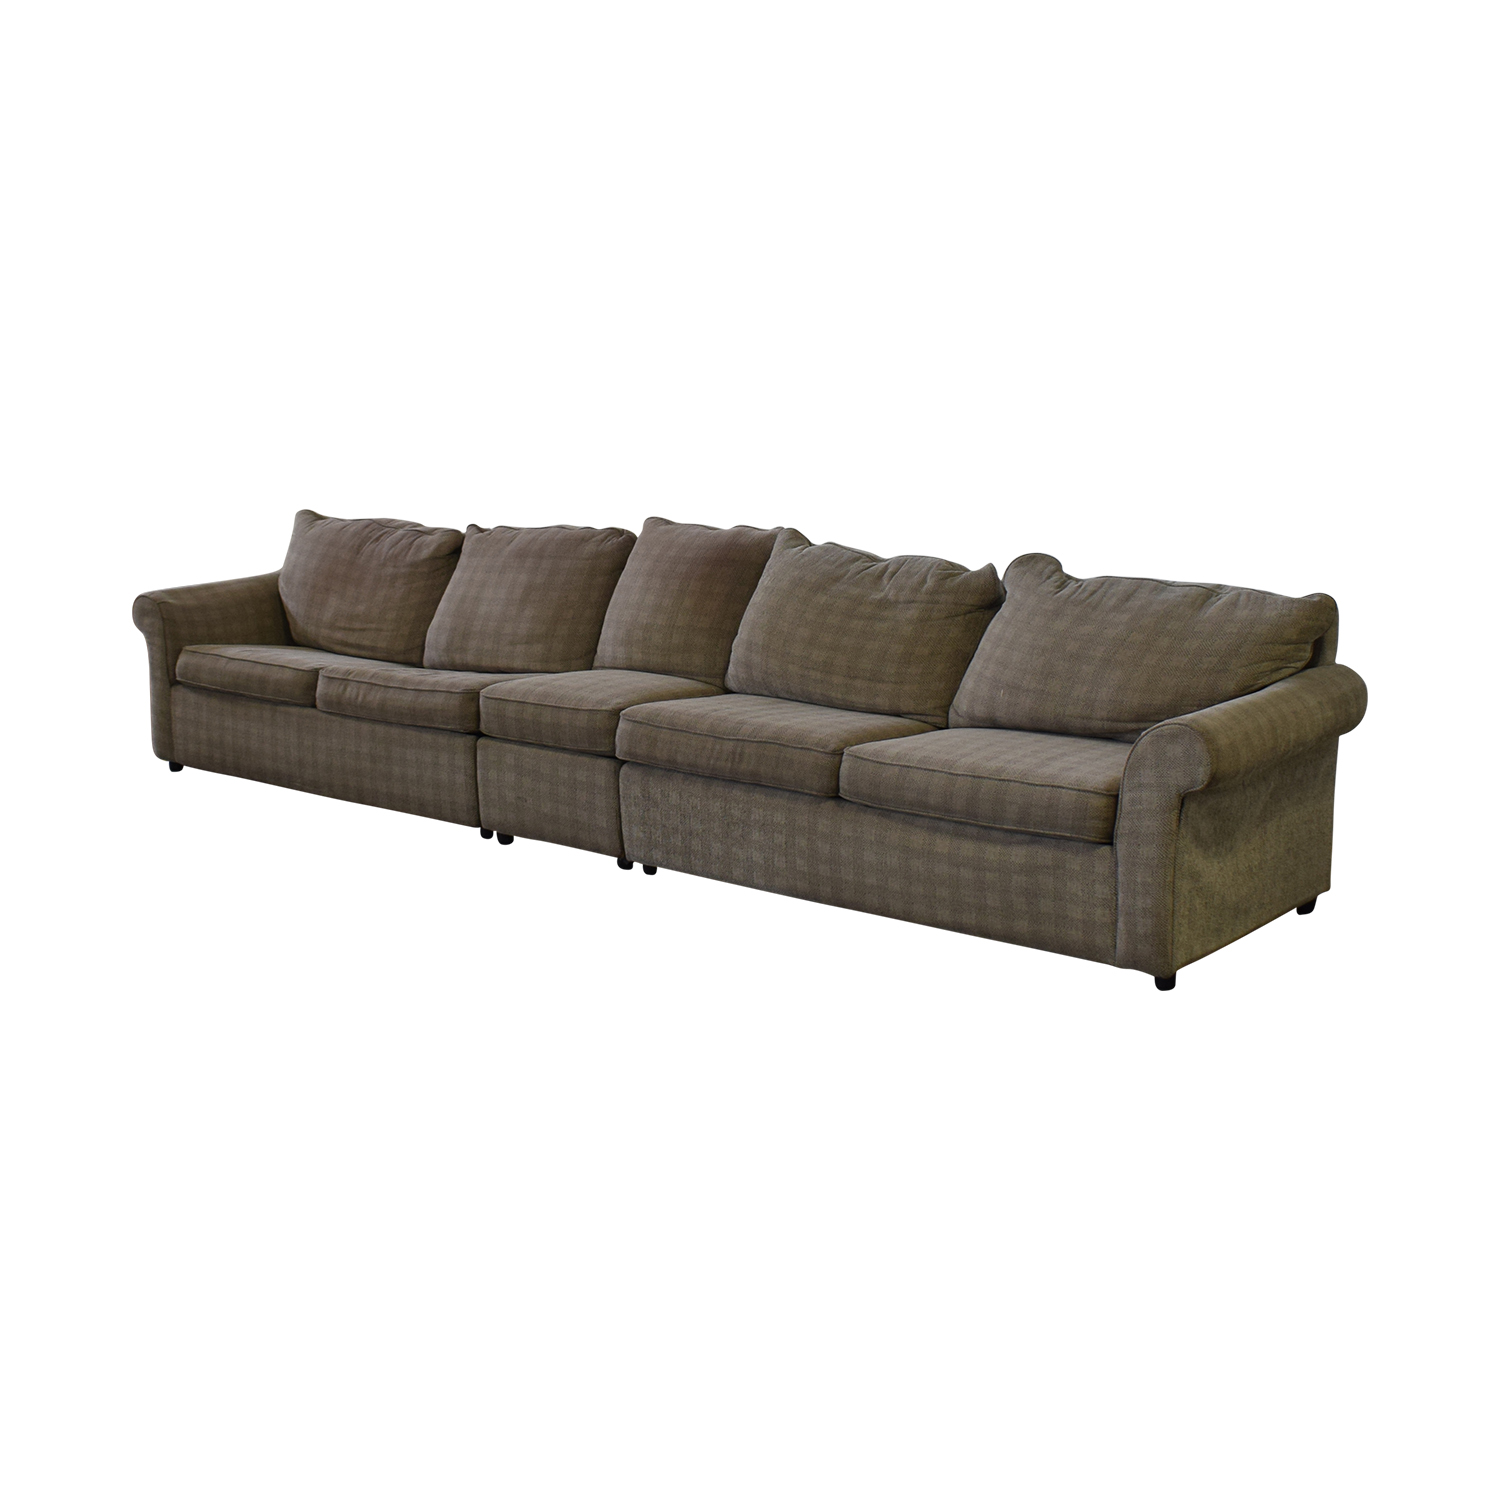 England Furniture England Furniture Sleeper Sectional Sectionals